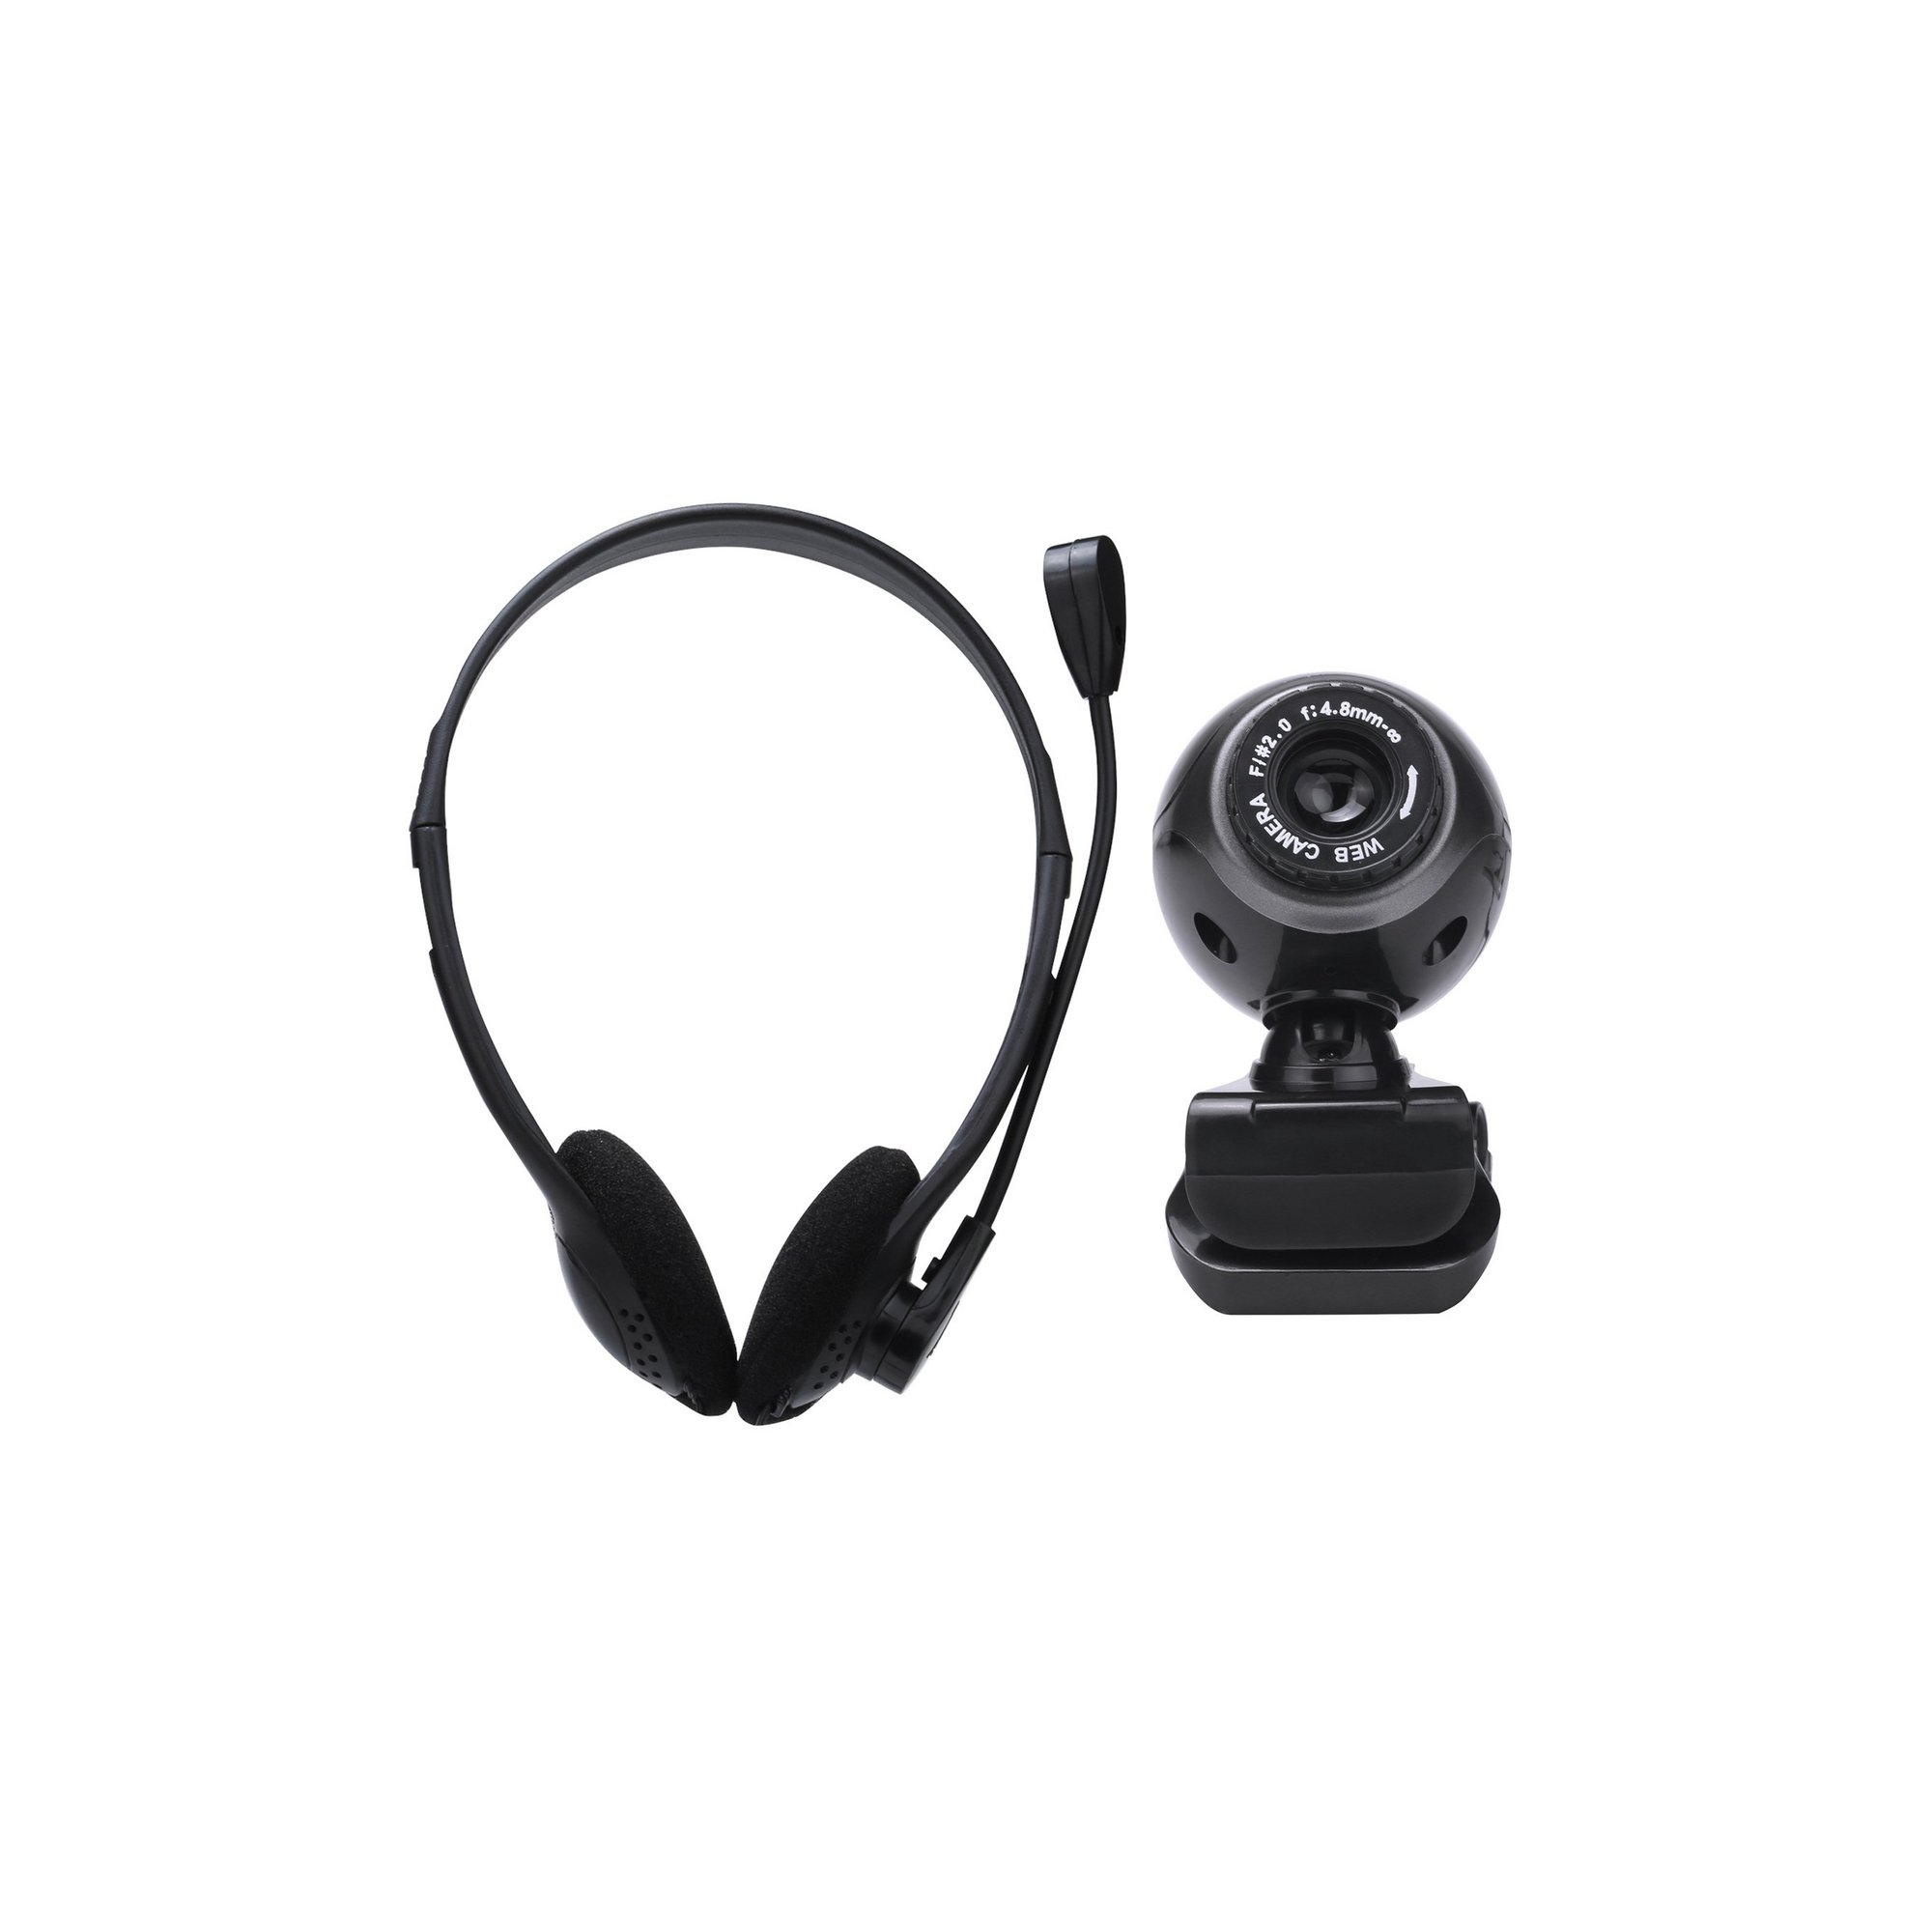 Image of Webcam and Headset with Microphone Bundle For PC and Laptop